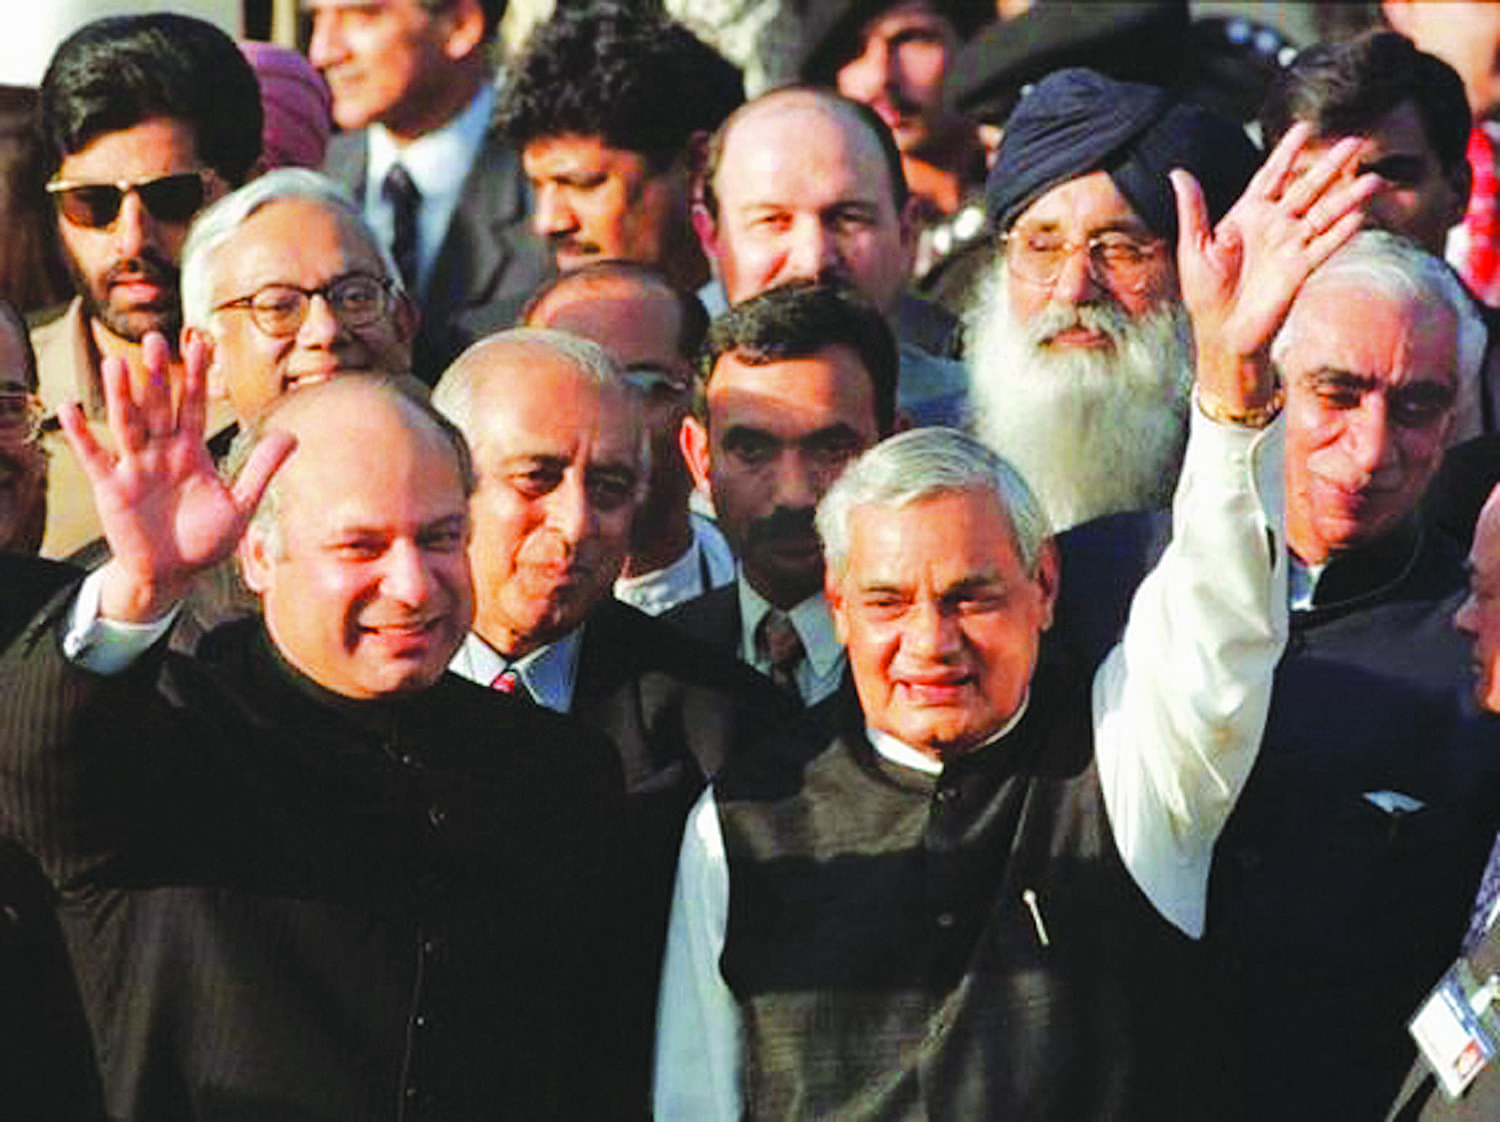 Prime minister Nawaz Sharif (left) and his visiting Indian counterpart, Atal Behari Vajpayee, at the Wagah border in May 1999. It was called a 'defining moment in history' at the time, but turned out to be one of the many false starts the two countries have had over the years.